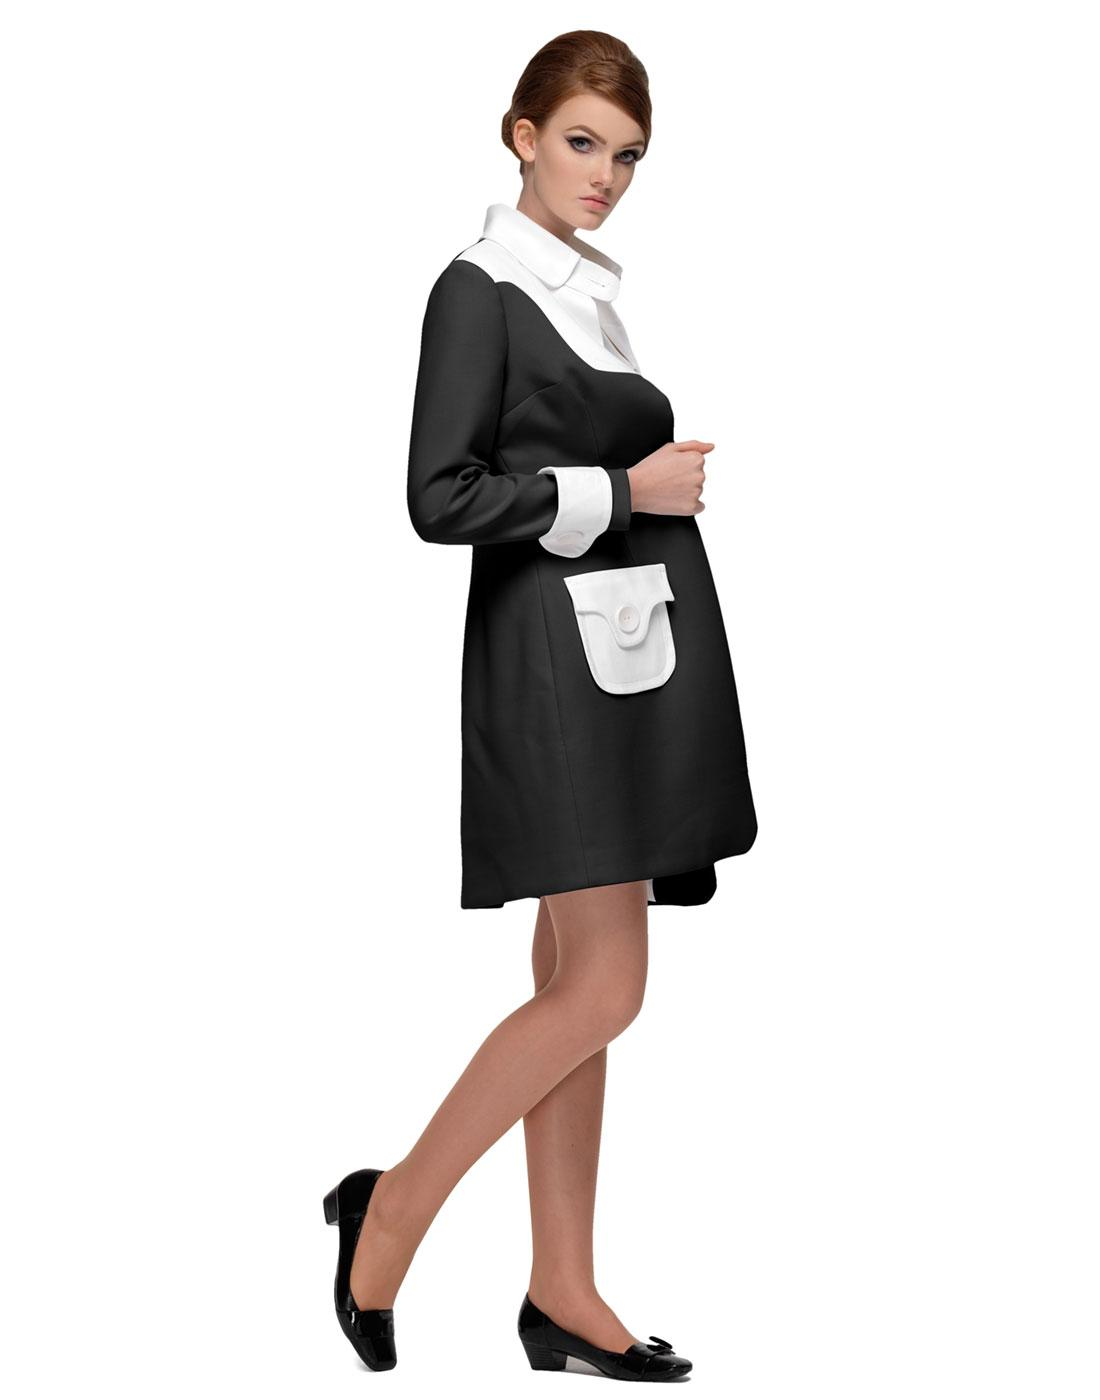 MARMALADE Retro 60s Mod Coat in Black